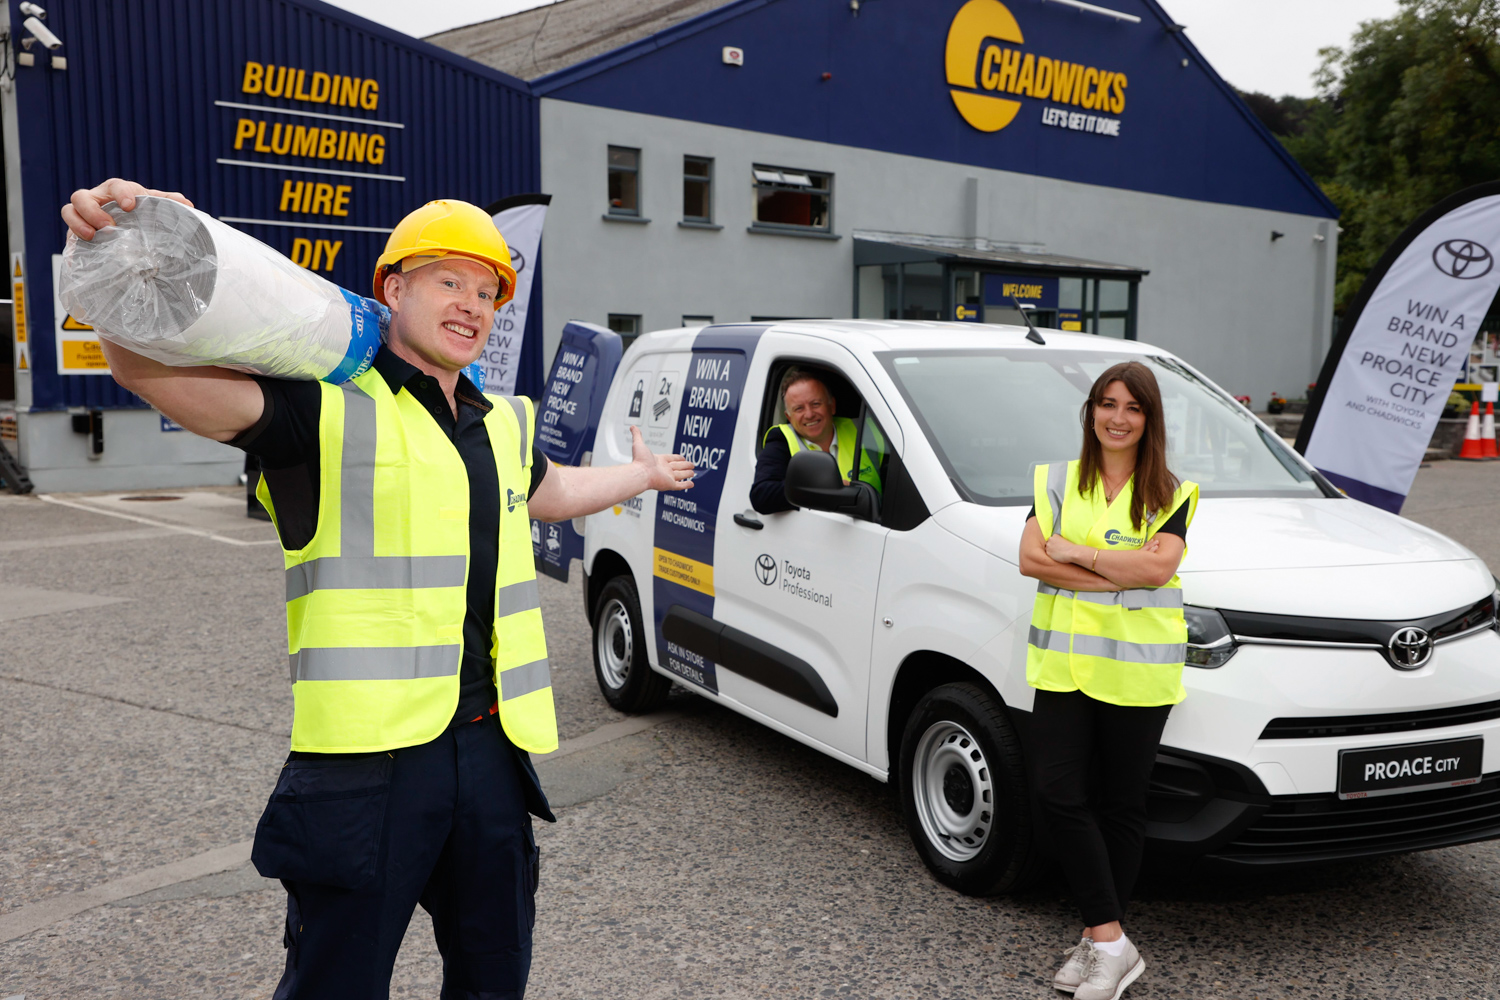 Car News | Chadwicks and Toyota Ireland partner for van giveaway | CompleteCar.ie